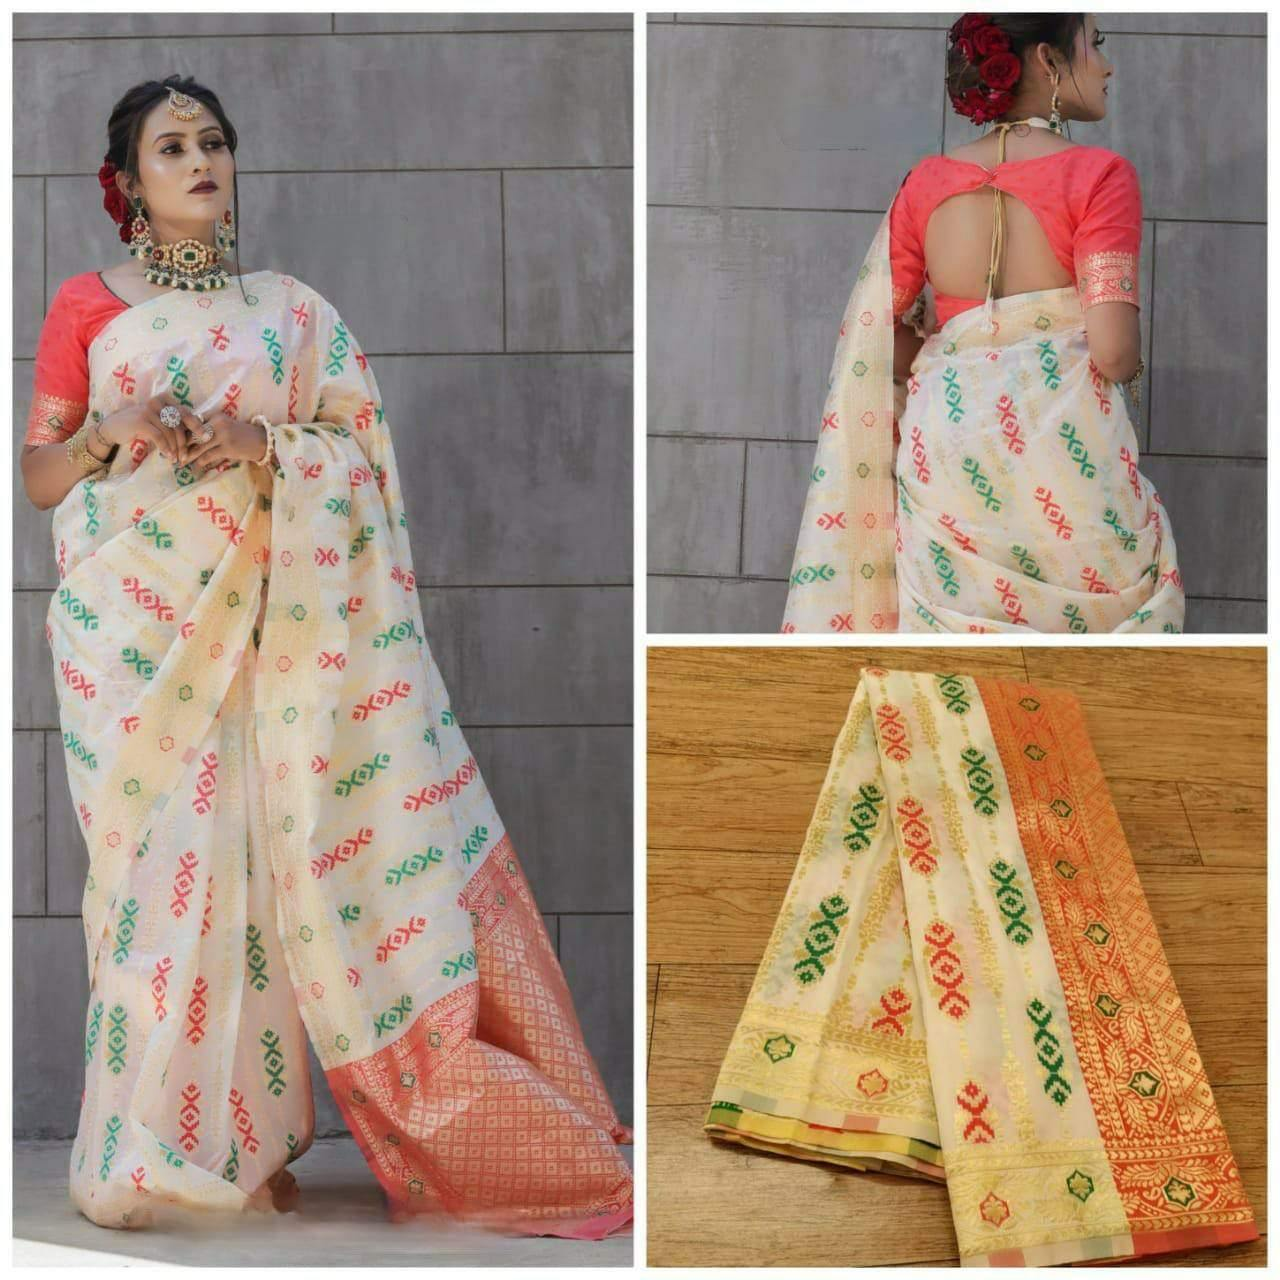 Modern Traditional Kanchupuram silk saree Single color - Kwirfy® - Banarasi saree, Cotton, cotton saree, cotton silk saree, Kanchipuram saree, Kanchipuram White saree, Kanjivaram white saree, paithani saree, paithani saree kimat, pattu saree, Saree cotton, silk cotton saree, silk saree, soft banarasi silk saree, White paithani saree